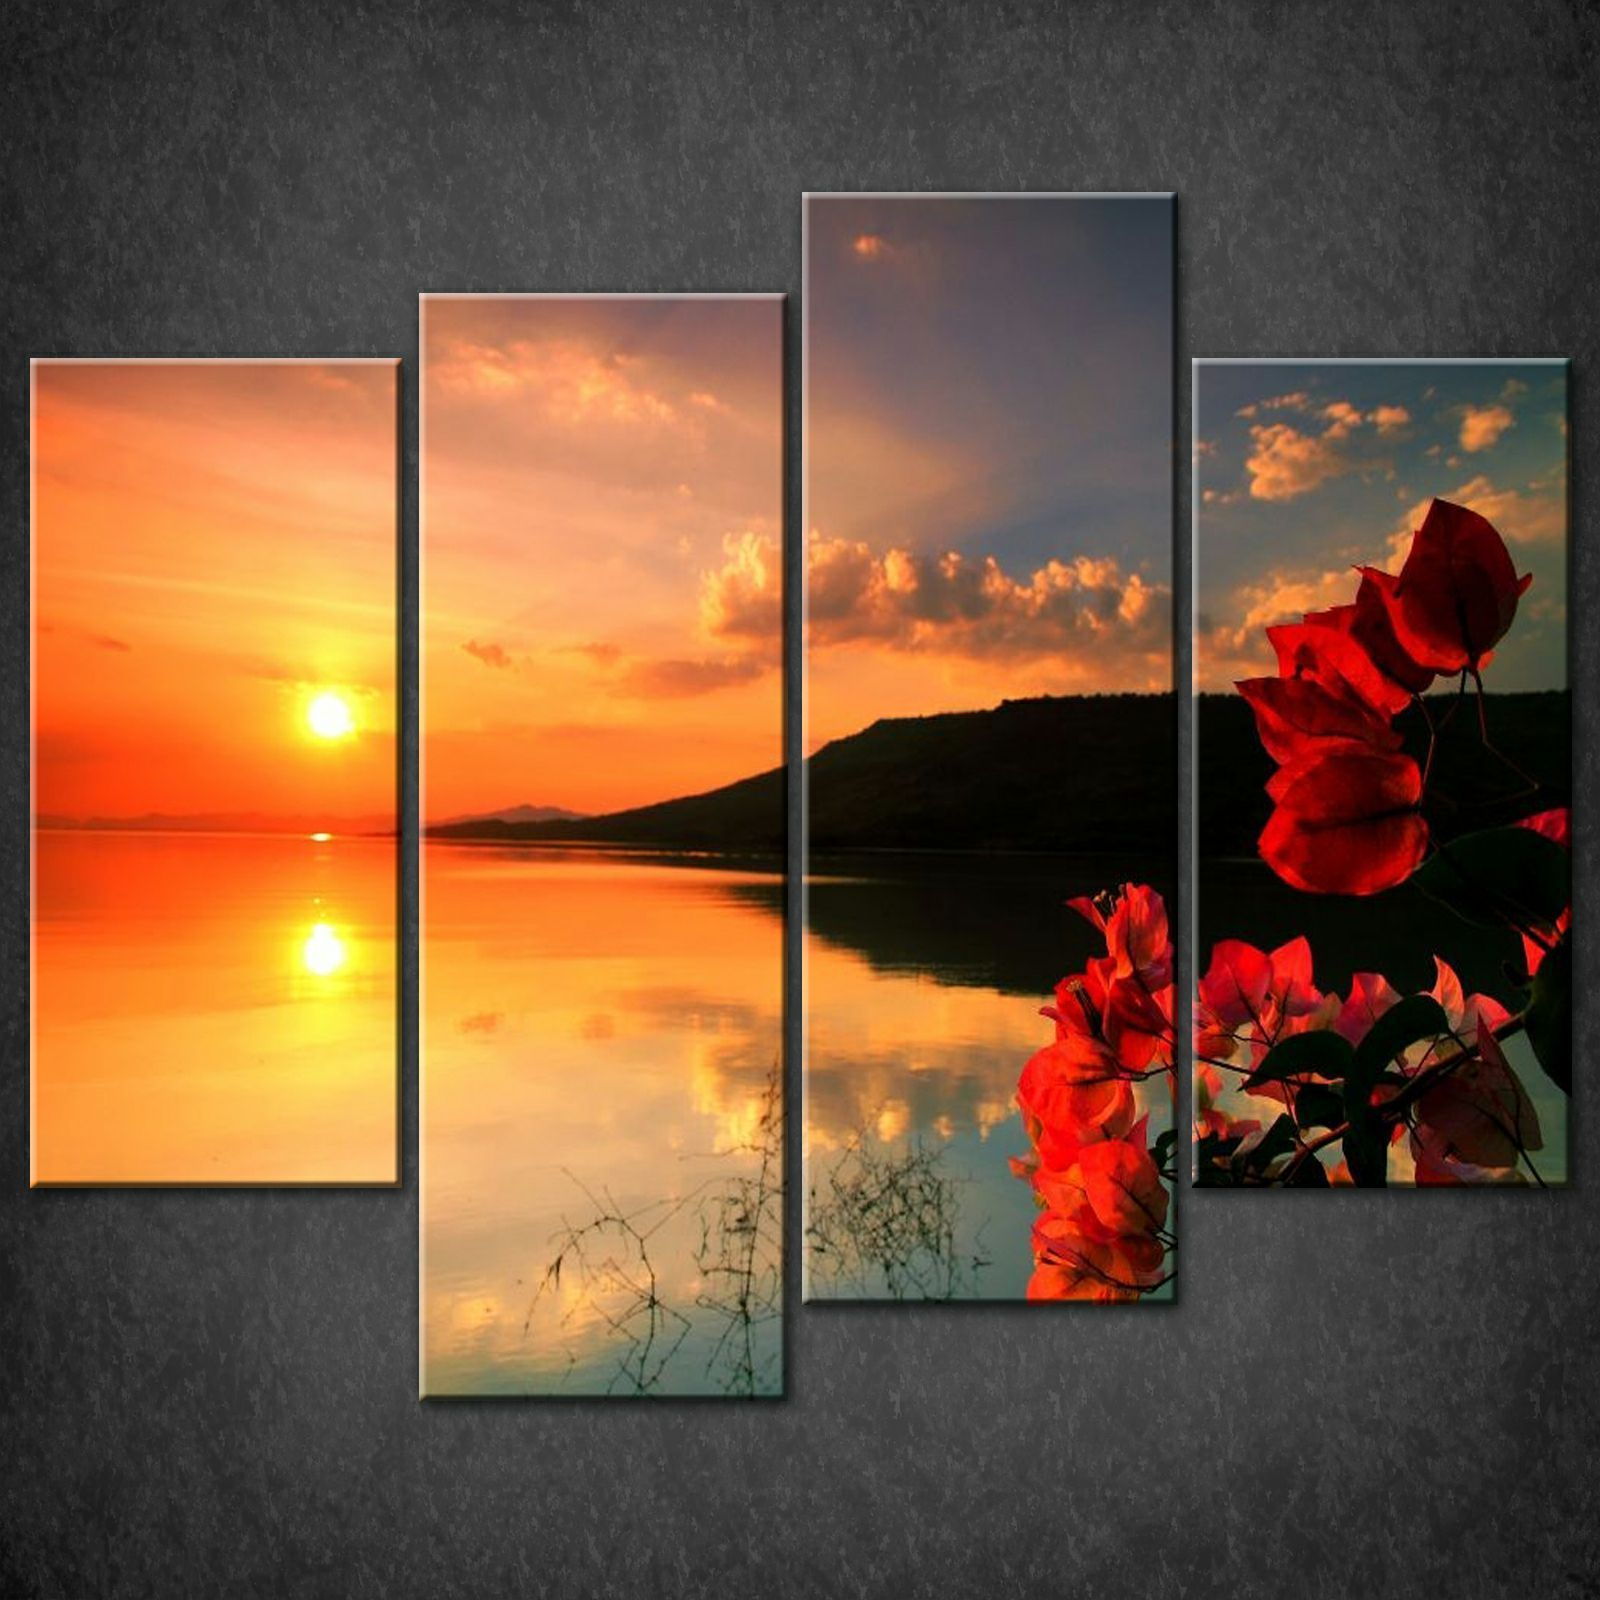 The leader in custom canvas prints online. Save up to 93% on canvas prints. Just choose the size and wrap thickness of your canvas print, upload your pictures or art, choose your border and join over 1 million happy choreadz.ml customers.